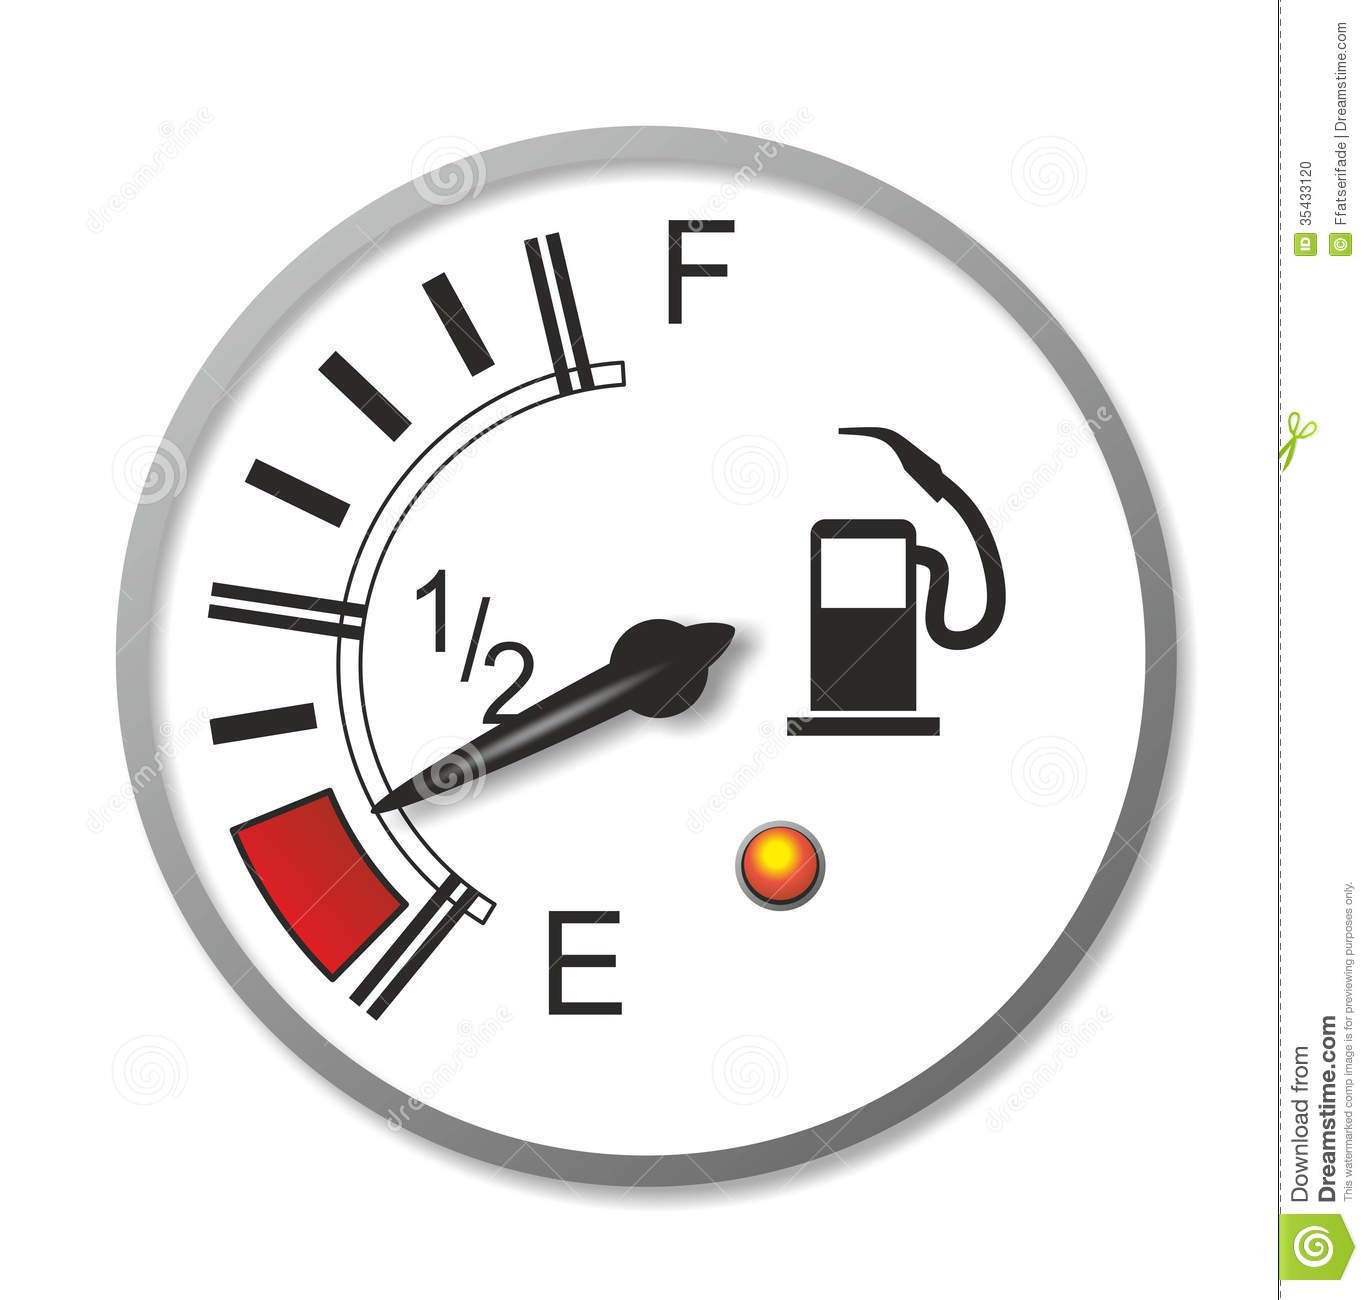 Or Symbol On The Fuel Gauge Showing You Which Side The Gas Tank Is On